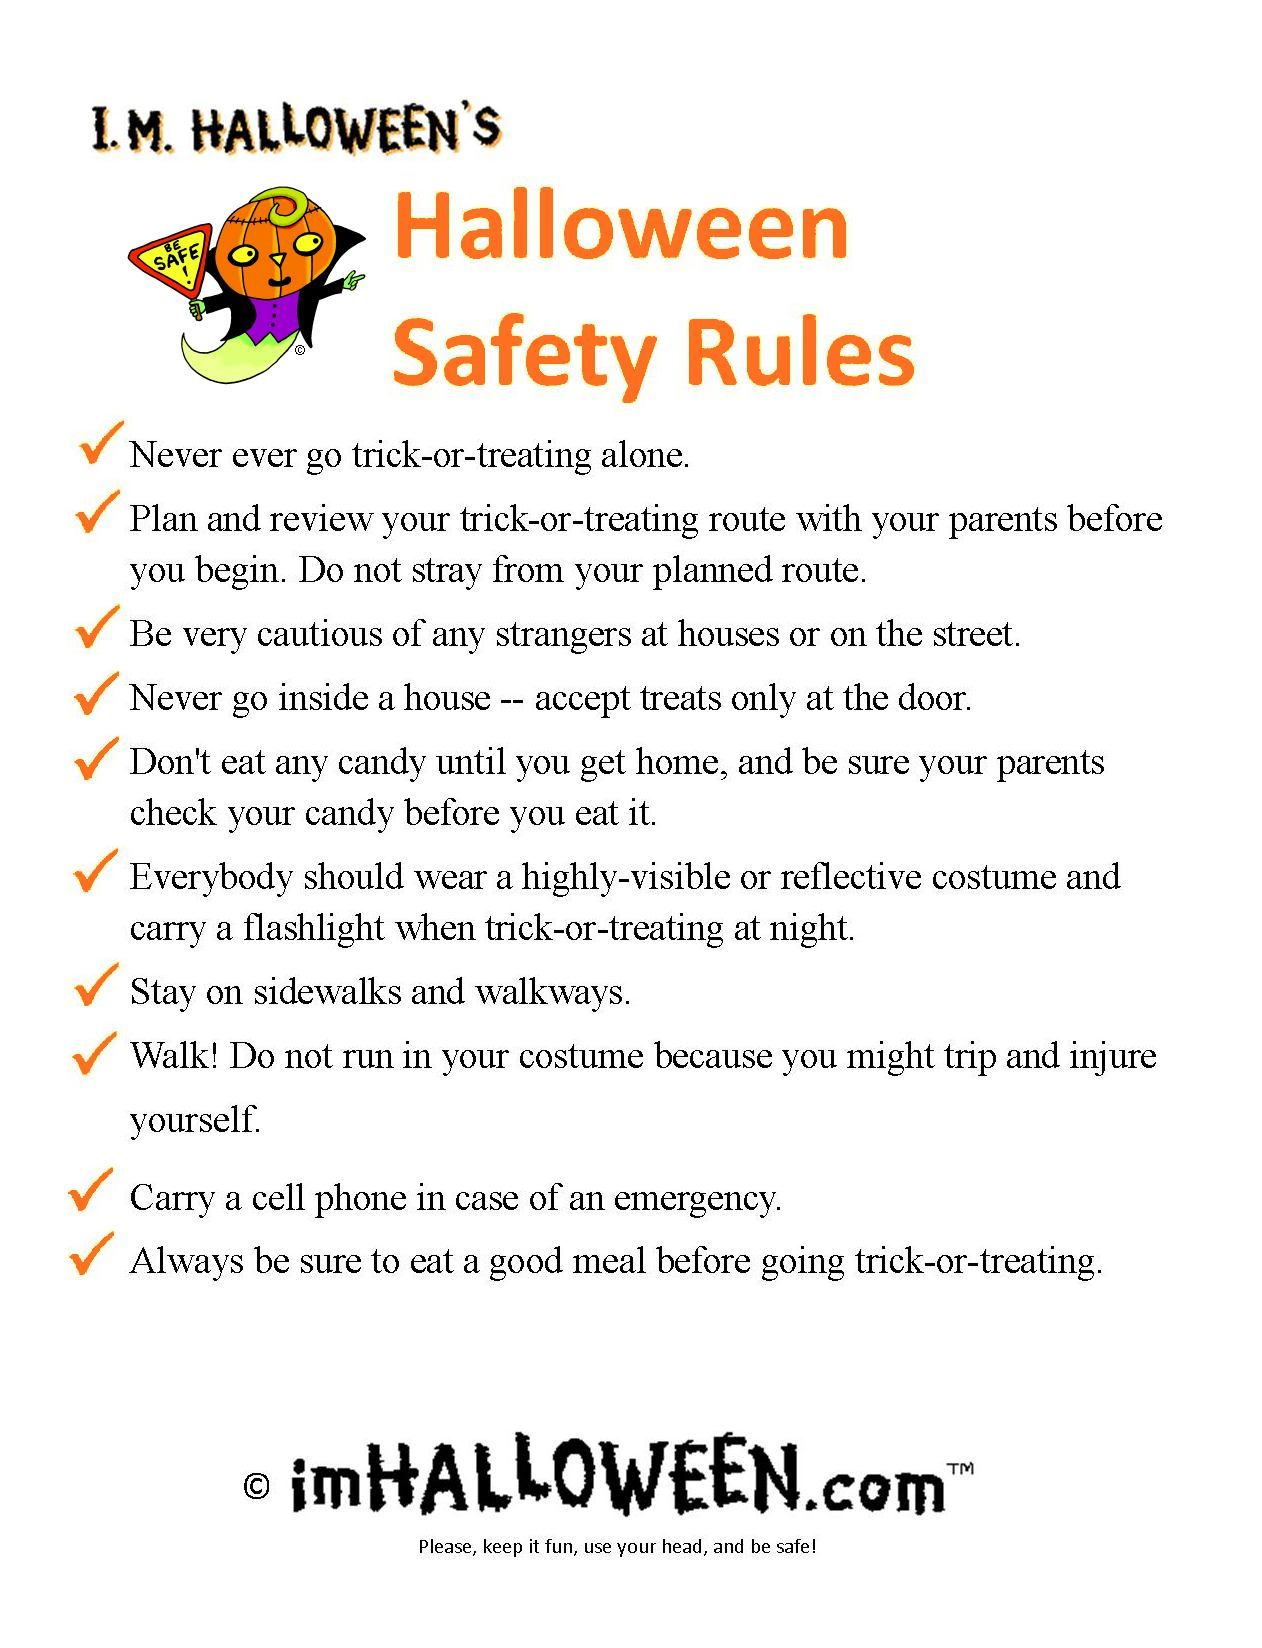 Halloween Safety Rules to print out. > Find more